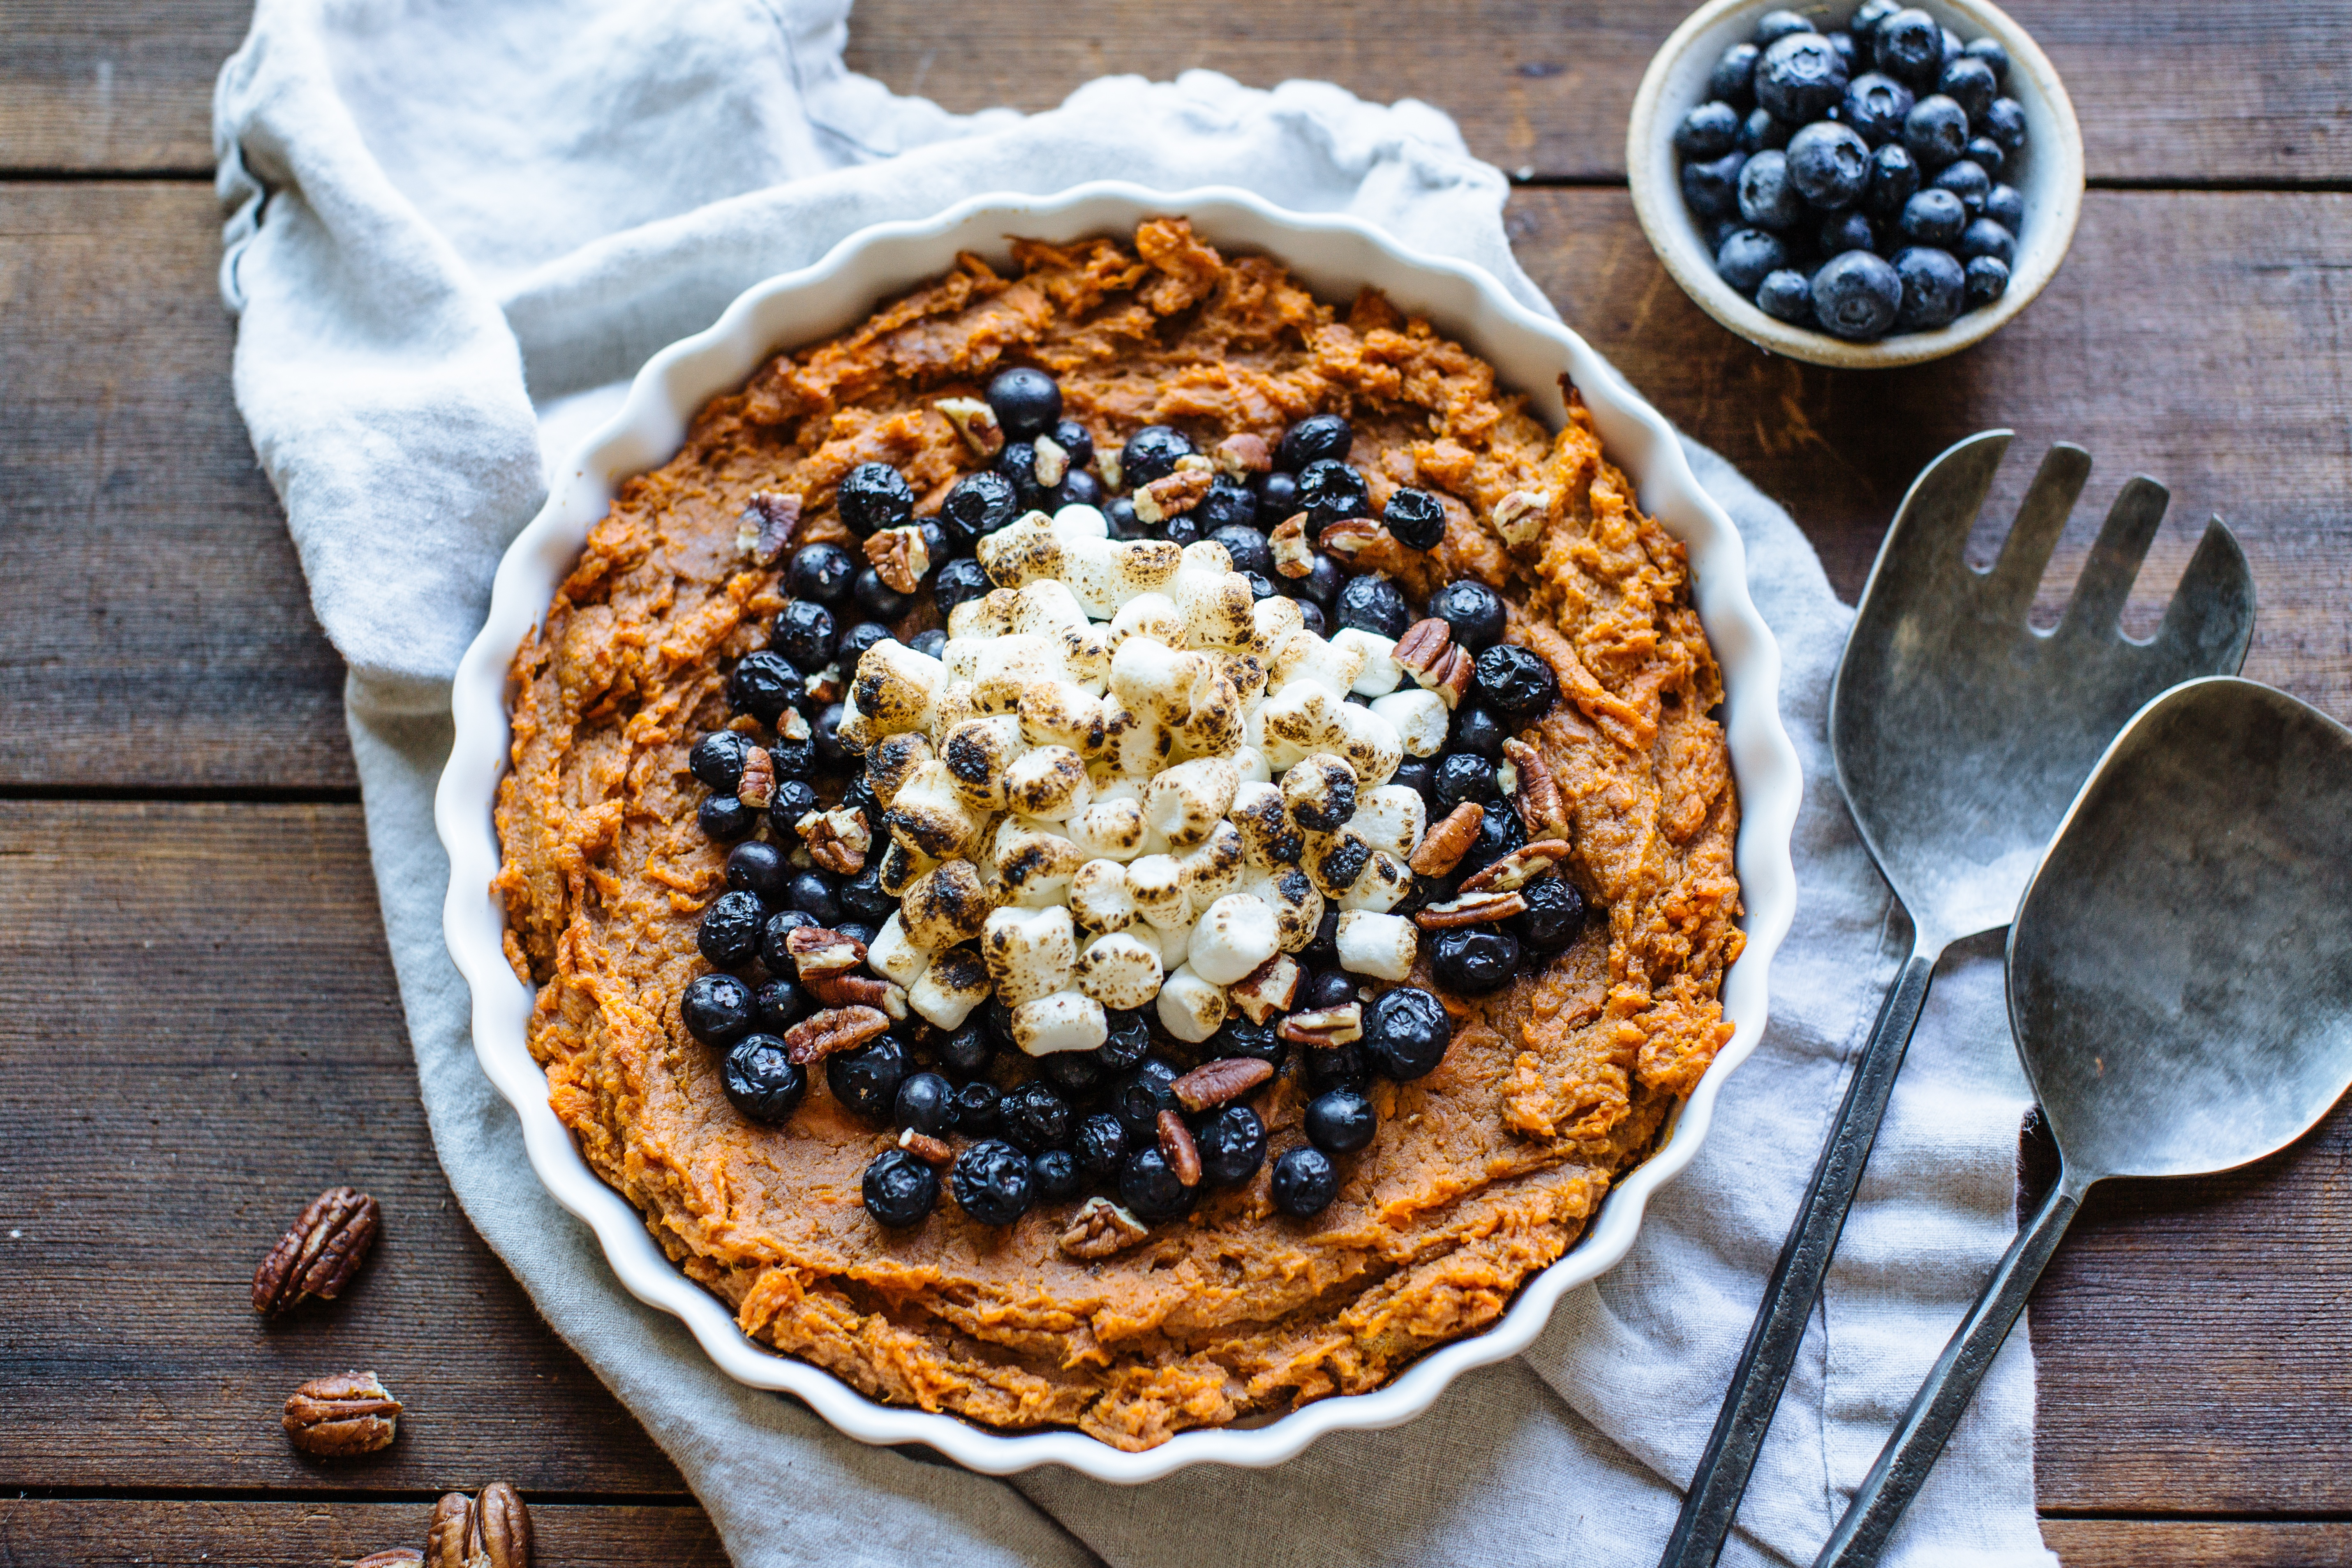 Sweet Potato Mash with Roasted Blueberries and Toasted Marshmallows